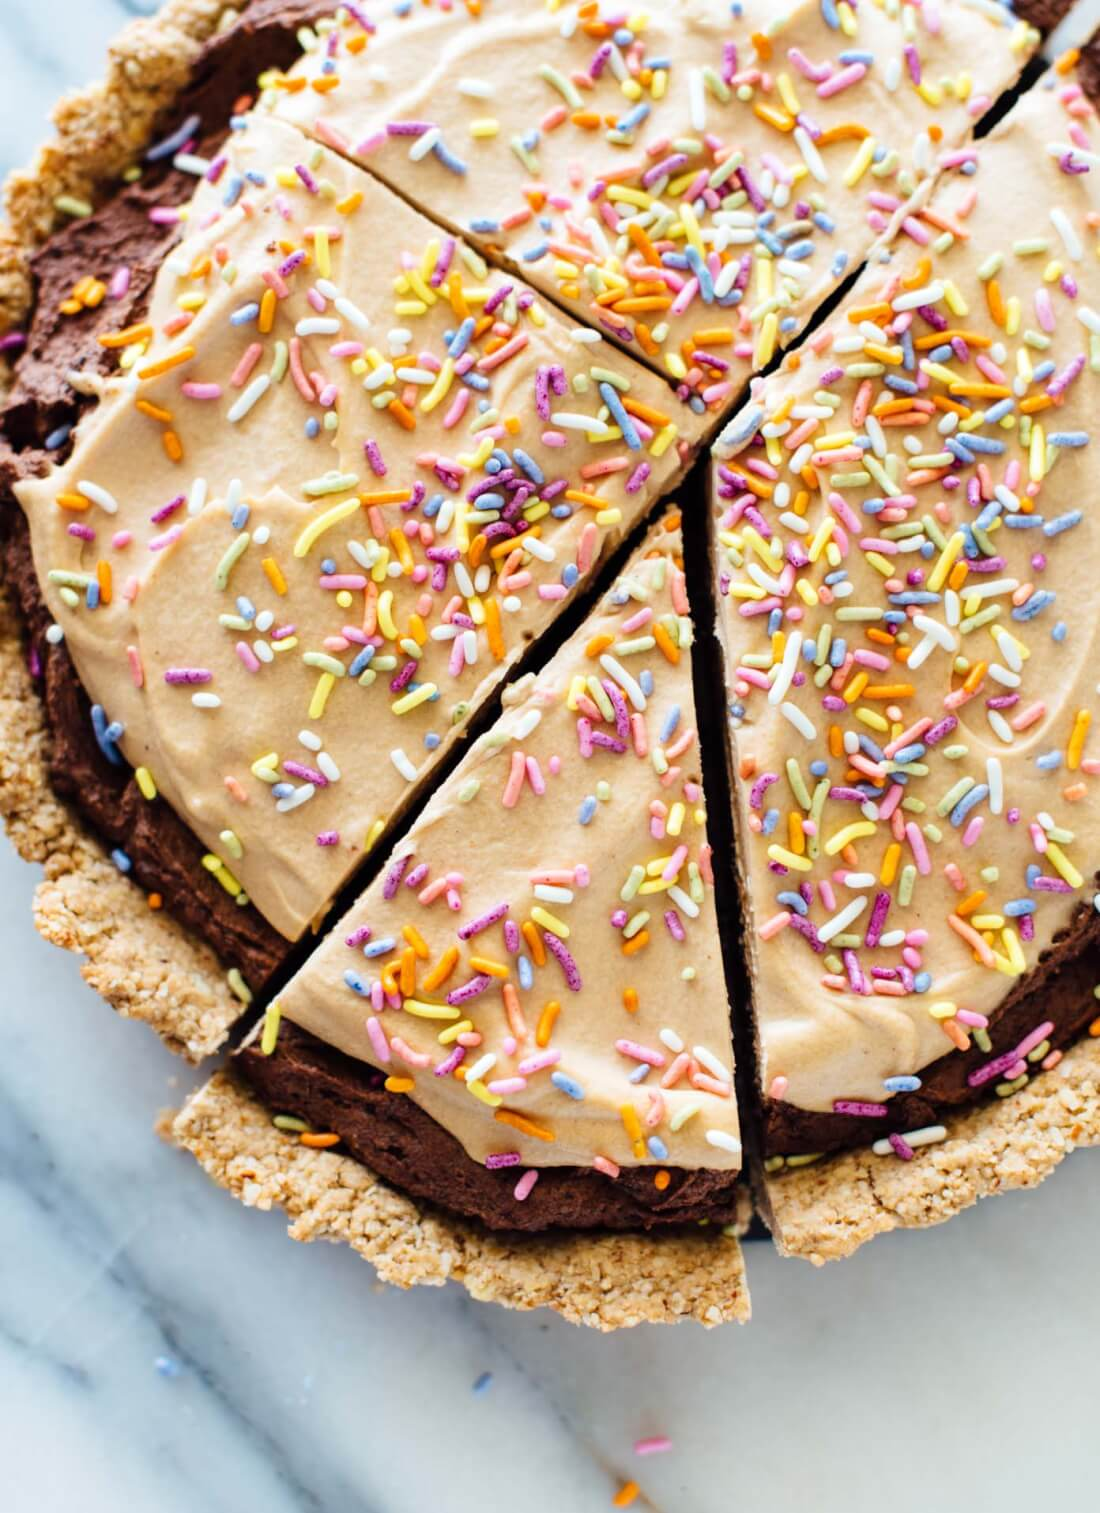 This chocolate peanut butter tart recipe is made with wholesome ingredients and tastes incredible! cookieandkate.com